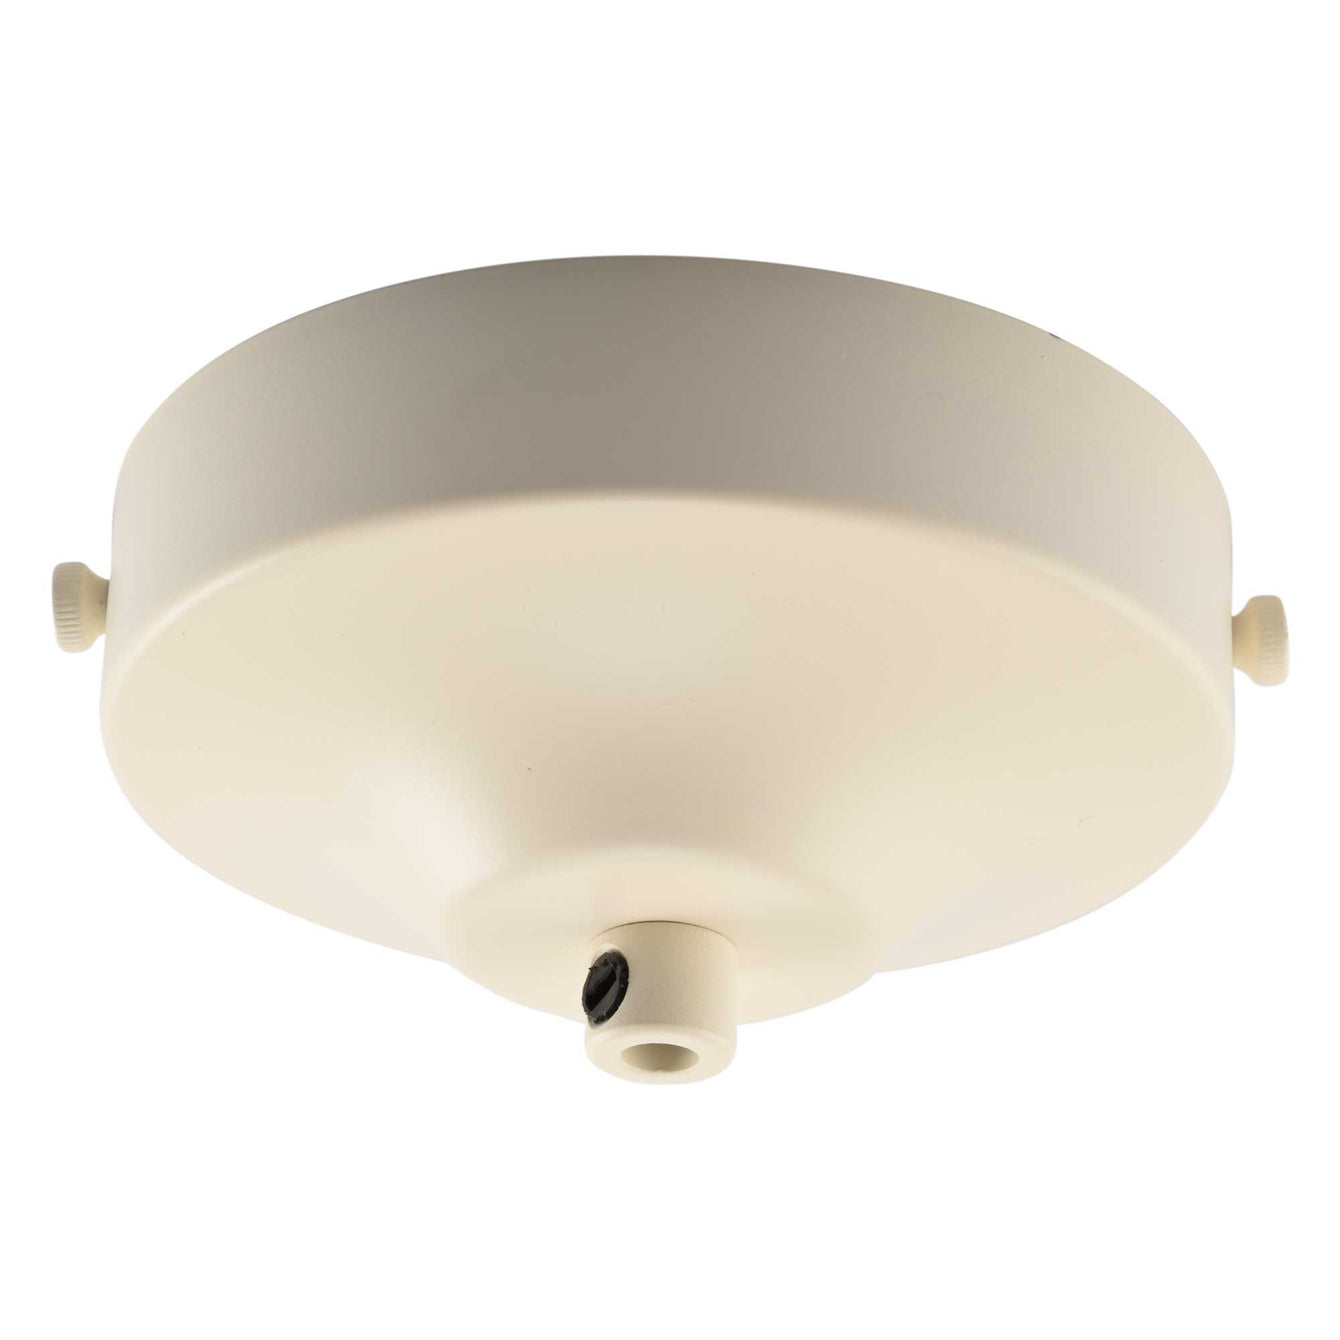 ElekTek 100mm Diameter Convex Ceiling Rose with Strap Bracket and Cord Grip Metallic Finishes Powder Coated Colours - Buy It Better Fusion Bronze